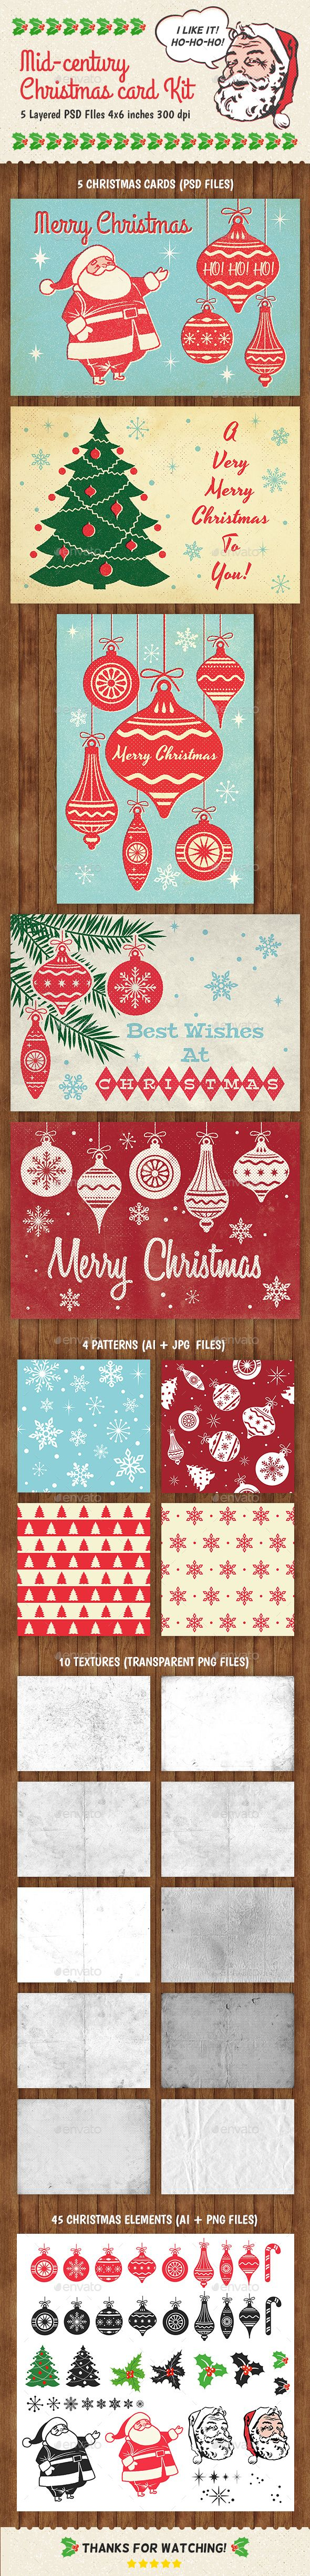 best 25 business christmas cards ideas on pinterest